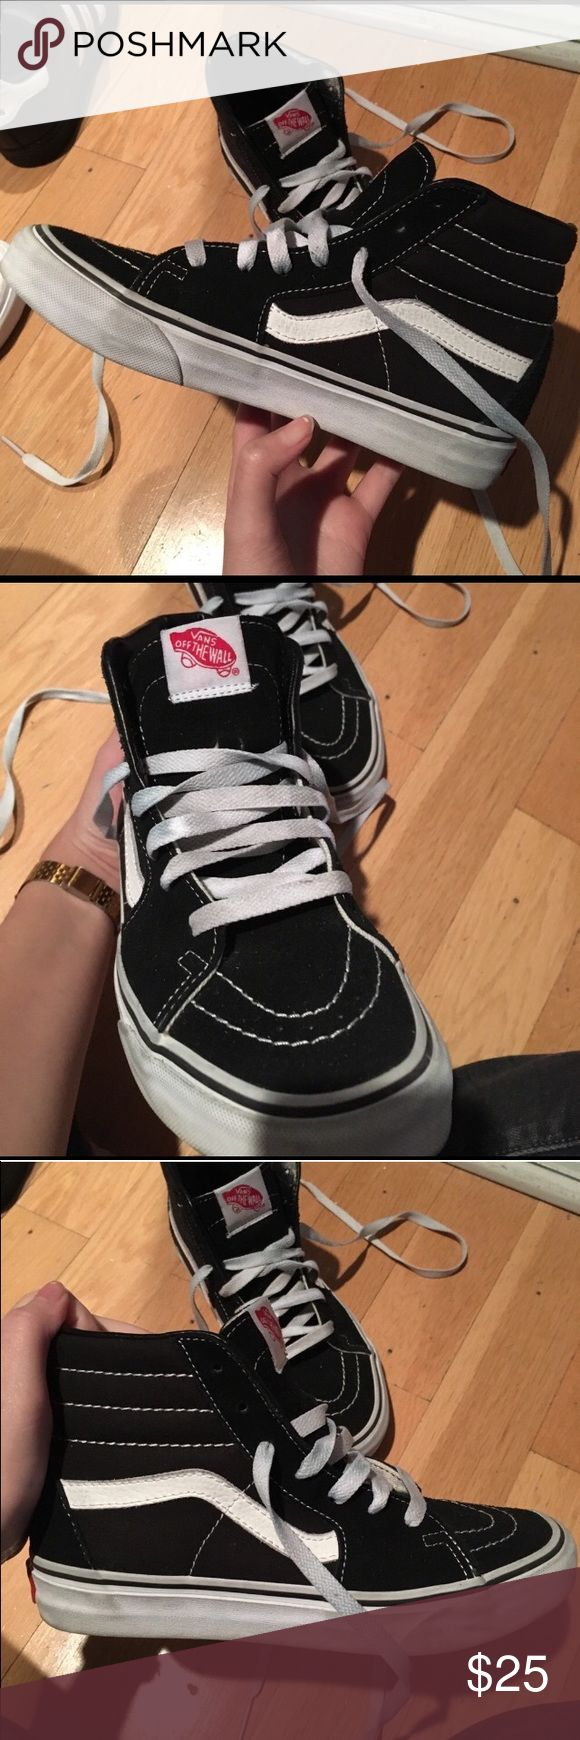 Vans Sk8-Hi Black Vans Sk8-Hi, worn, I'm trying to make at least $20 for these in my actual earnings PRICE FIRM, women's 7 men's 5 Vans Shoes Sneakers